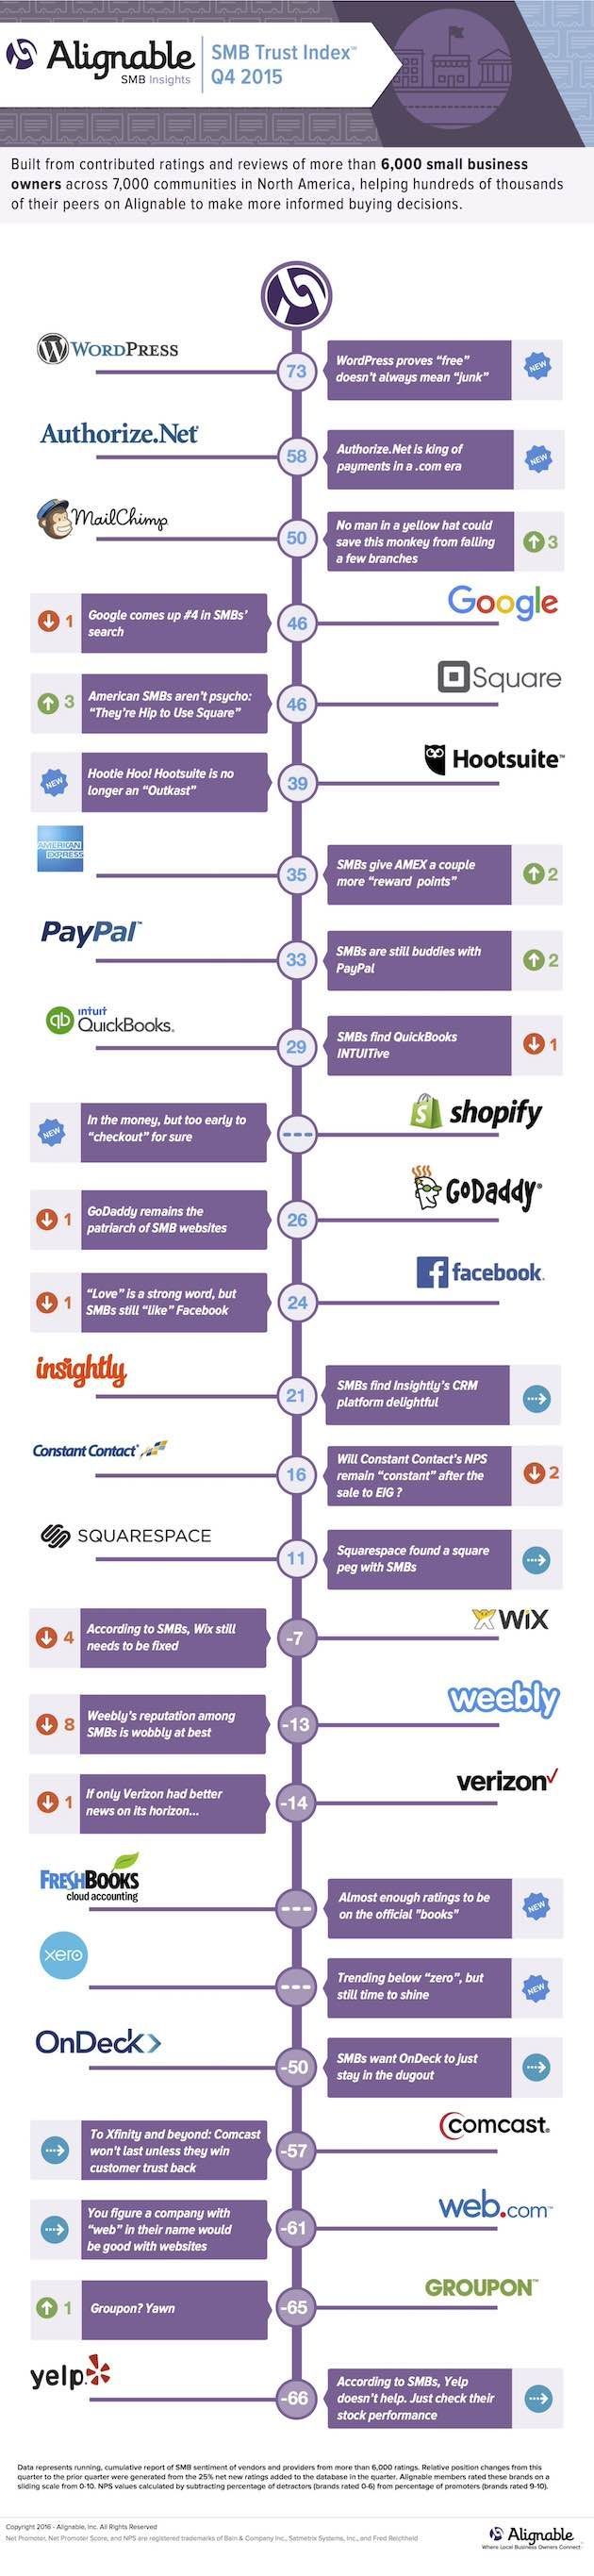 Digital Tools Recommended Most by SMB Owners #Infographic #Business #SmallBusiness #Marketing